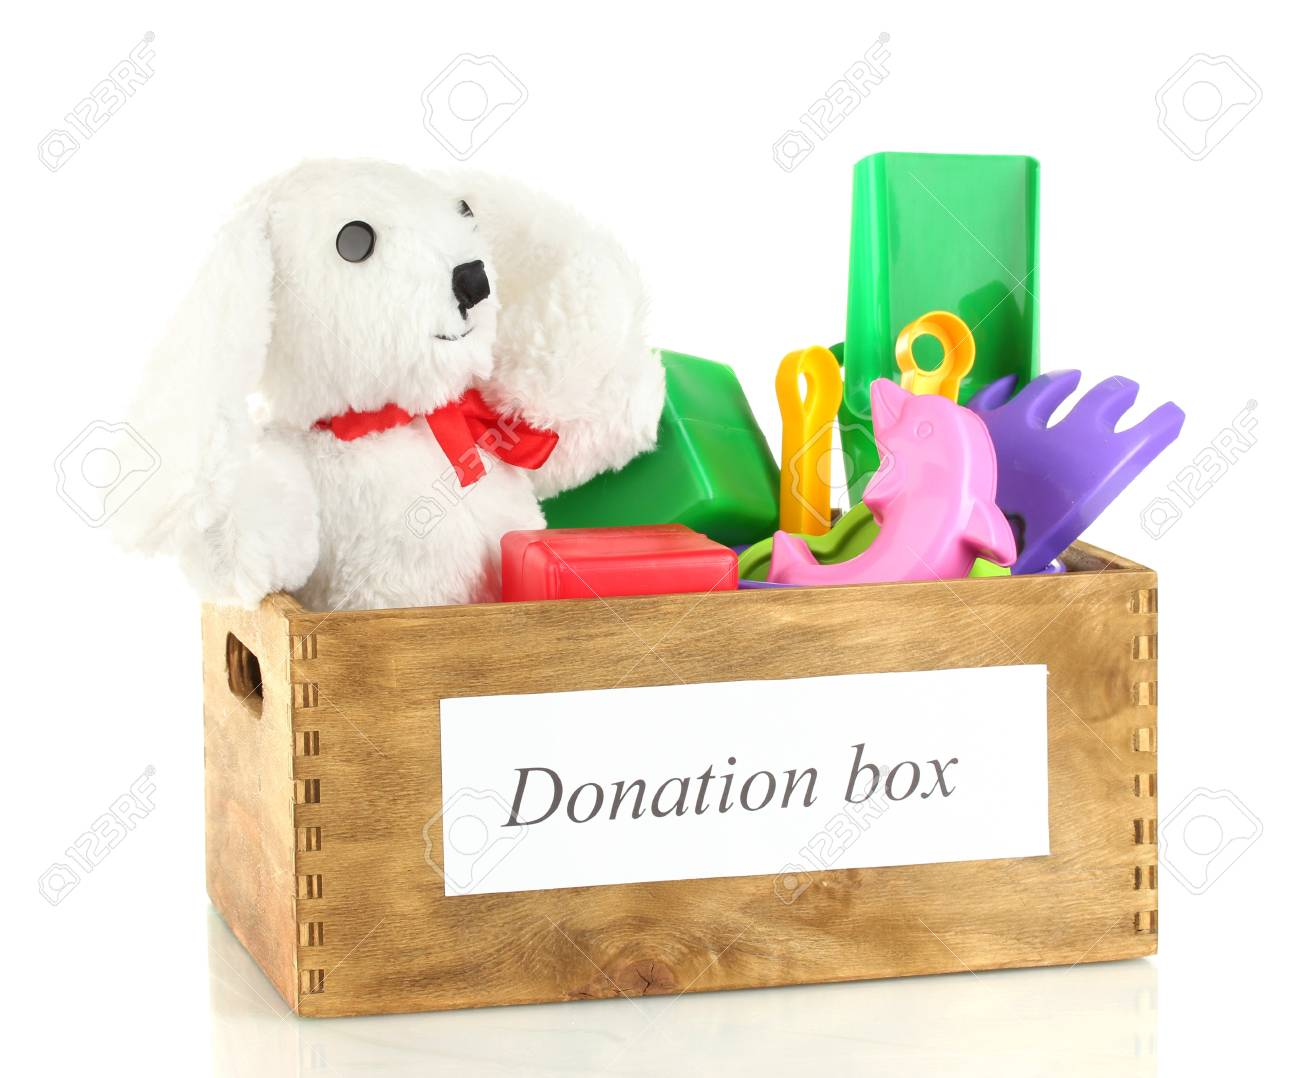 Donation box with children toys isolated on white Stock Photo - 14906649